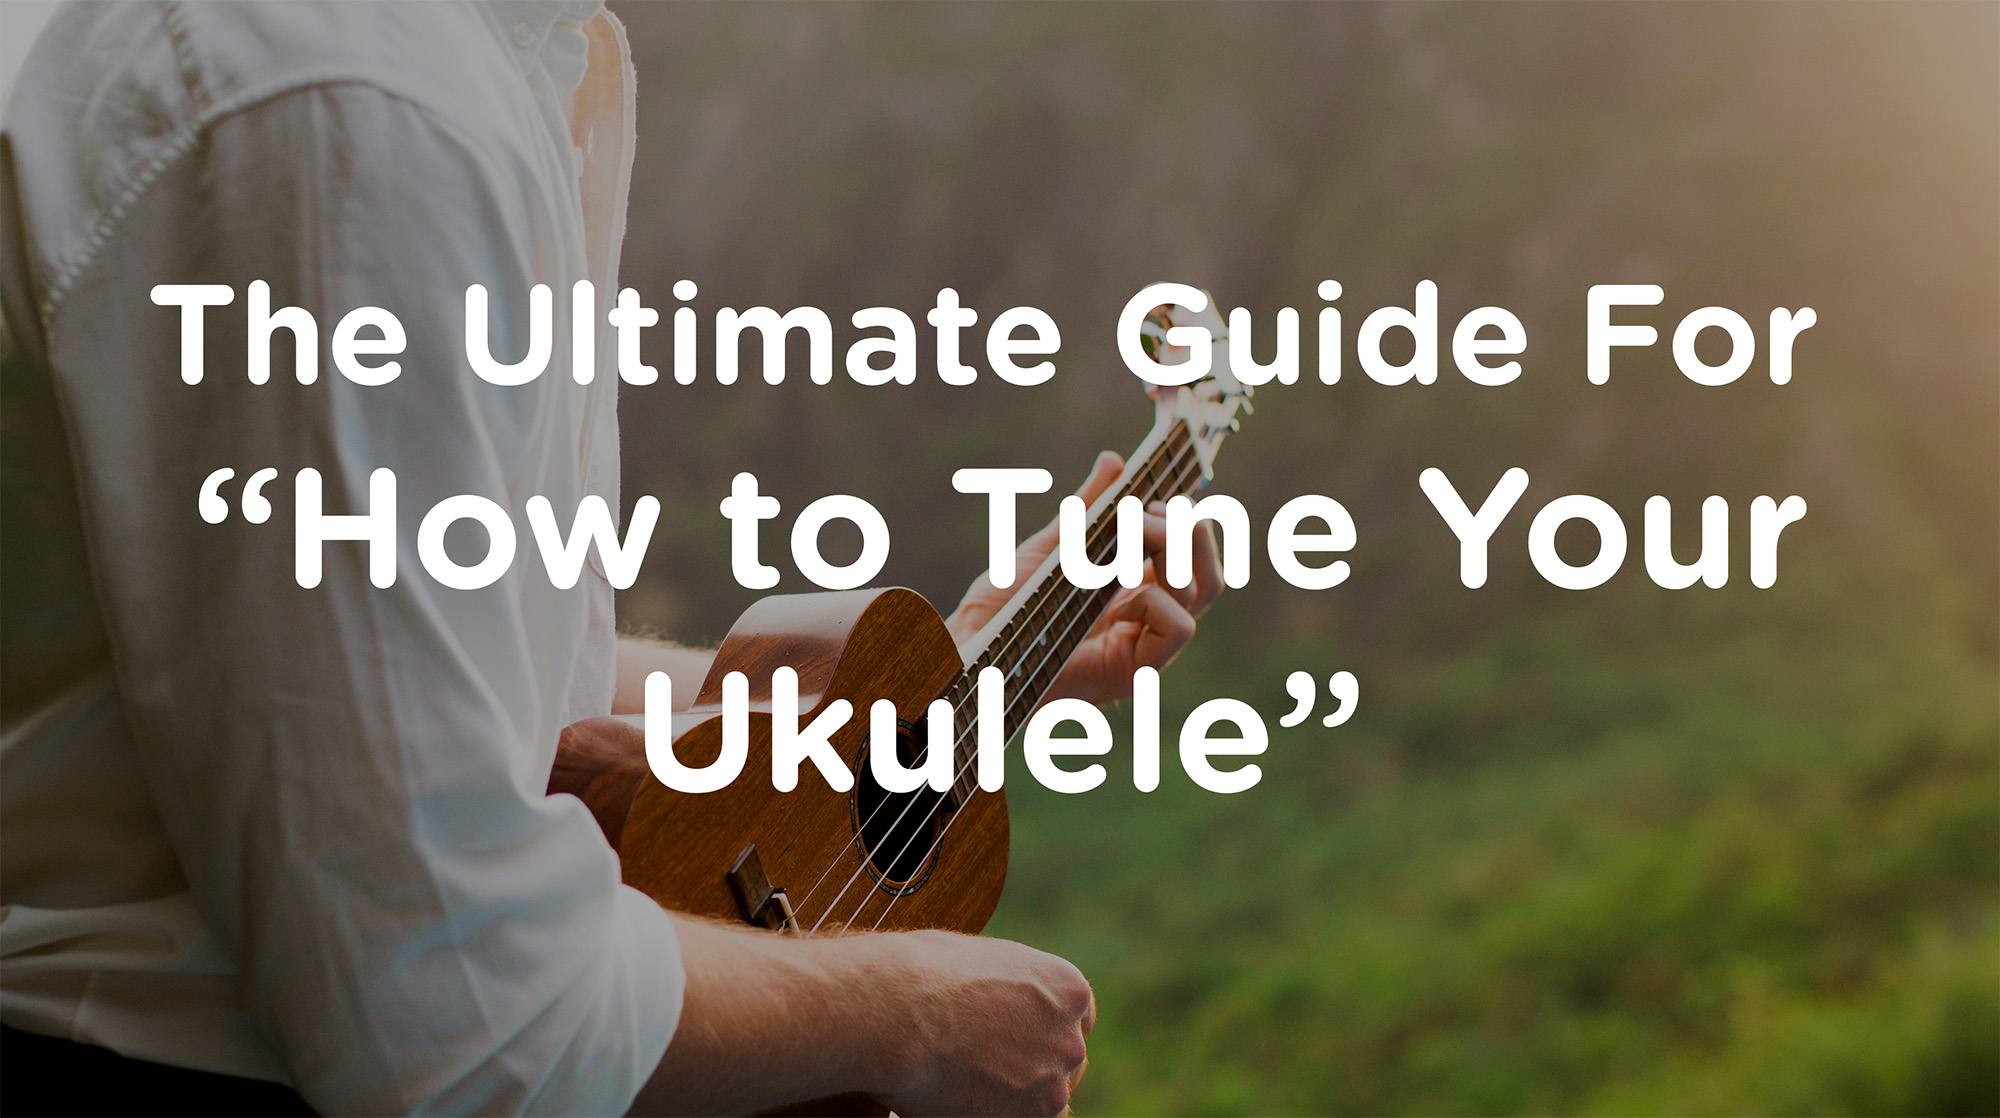 Ukulele Tuning The Ultimate Guide For How to Tune Your Ukulele